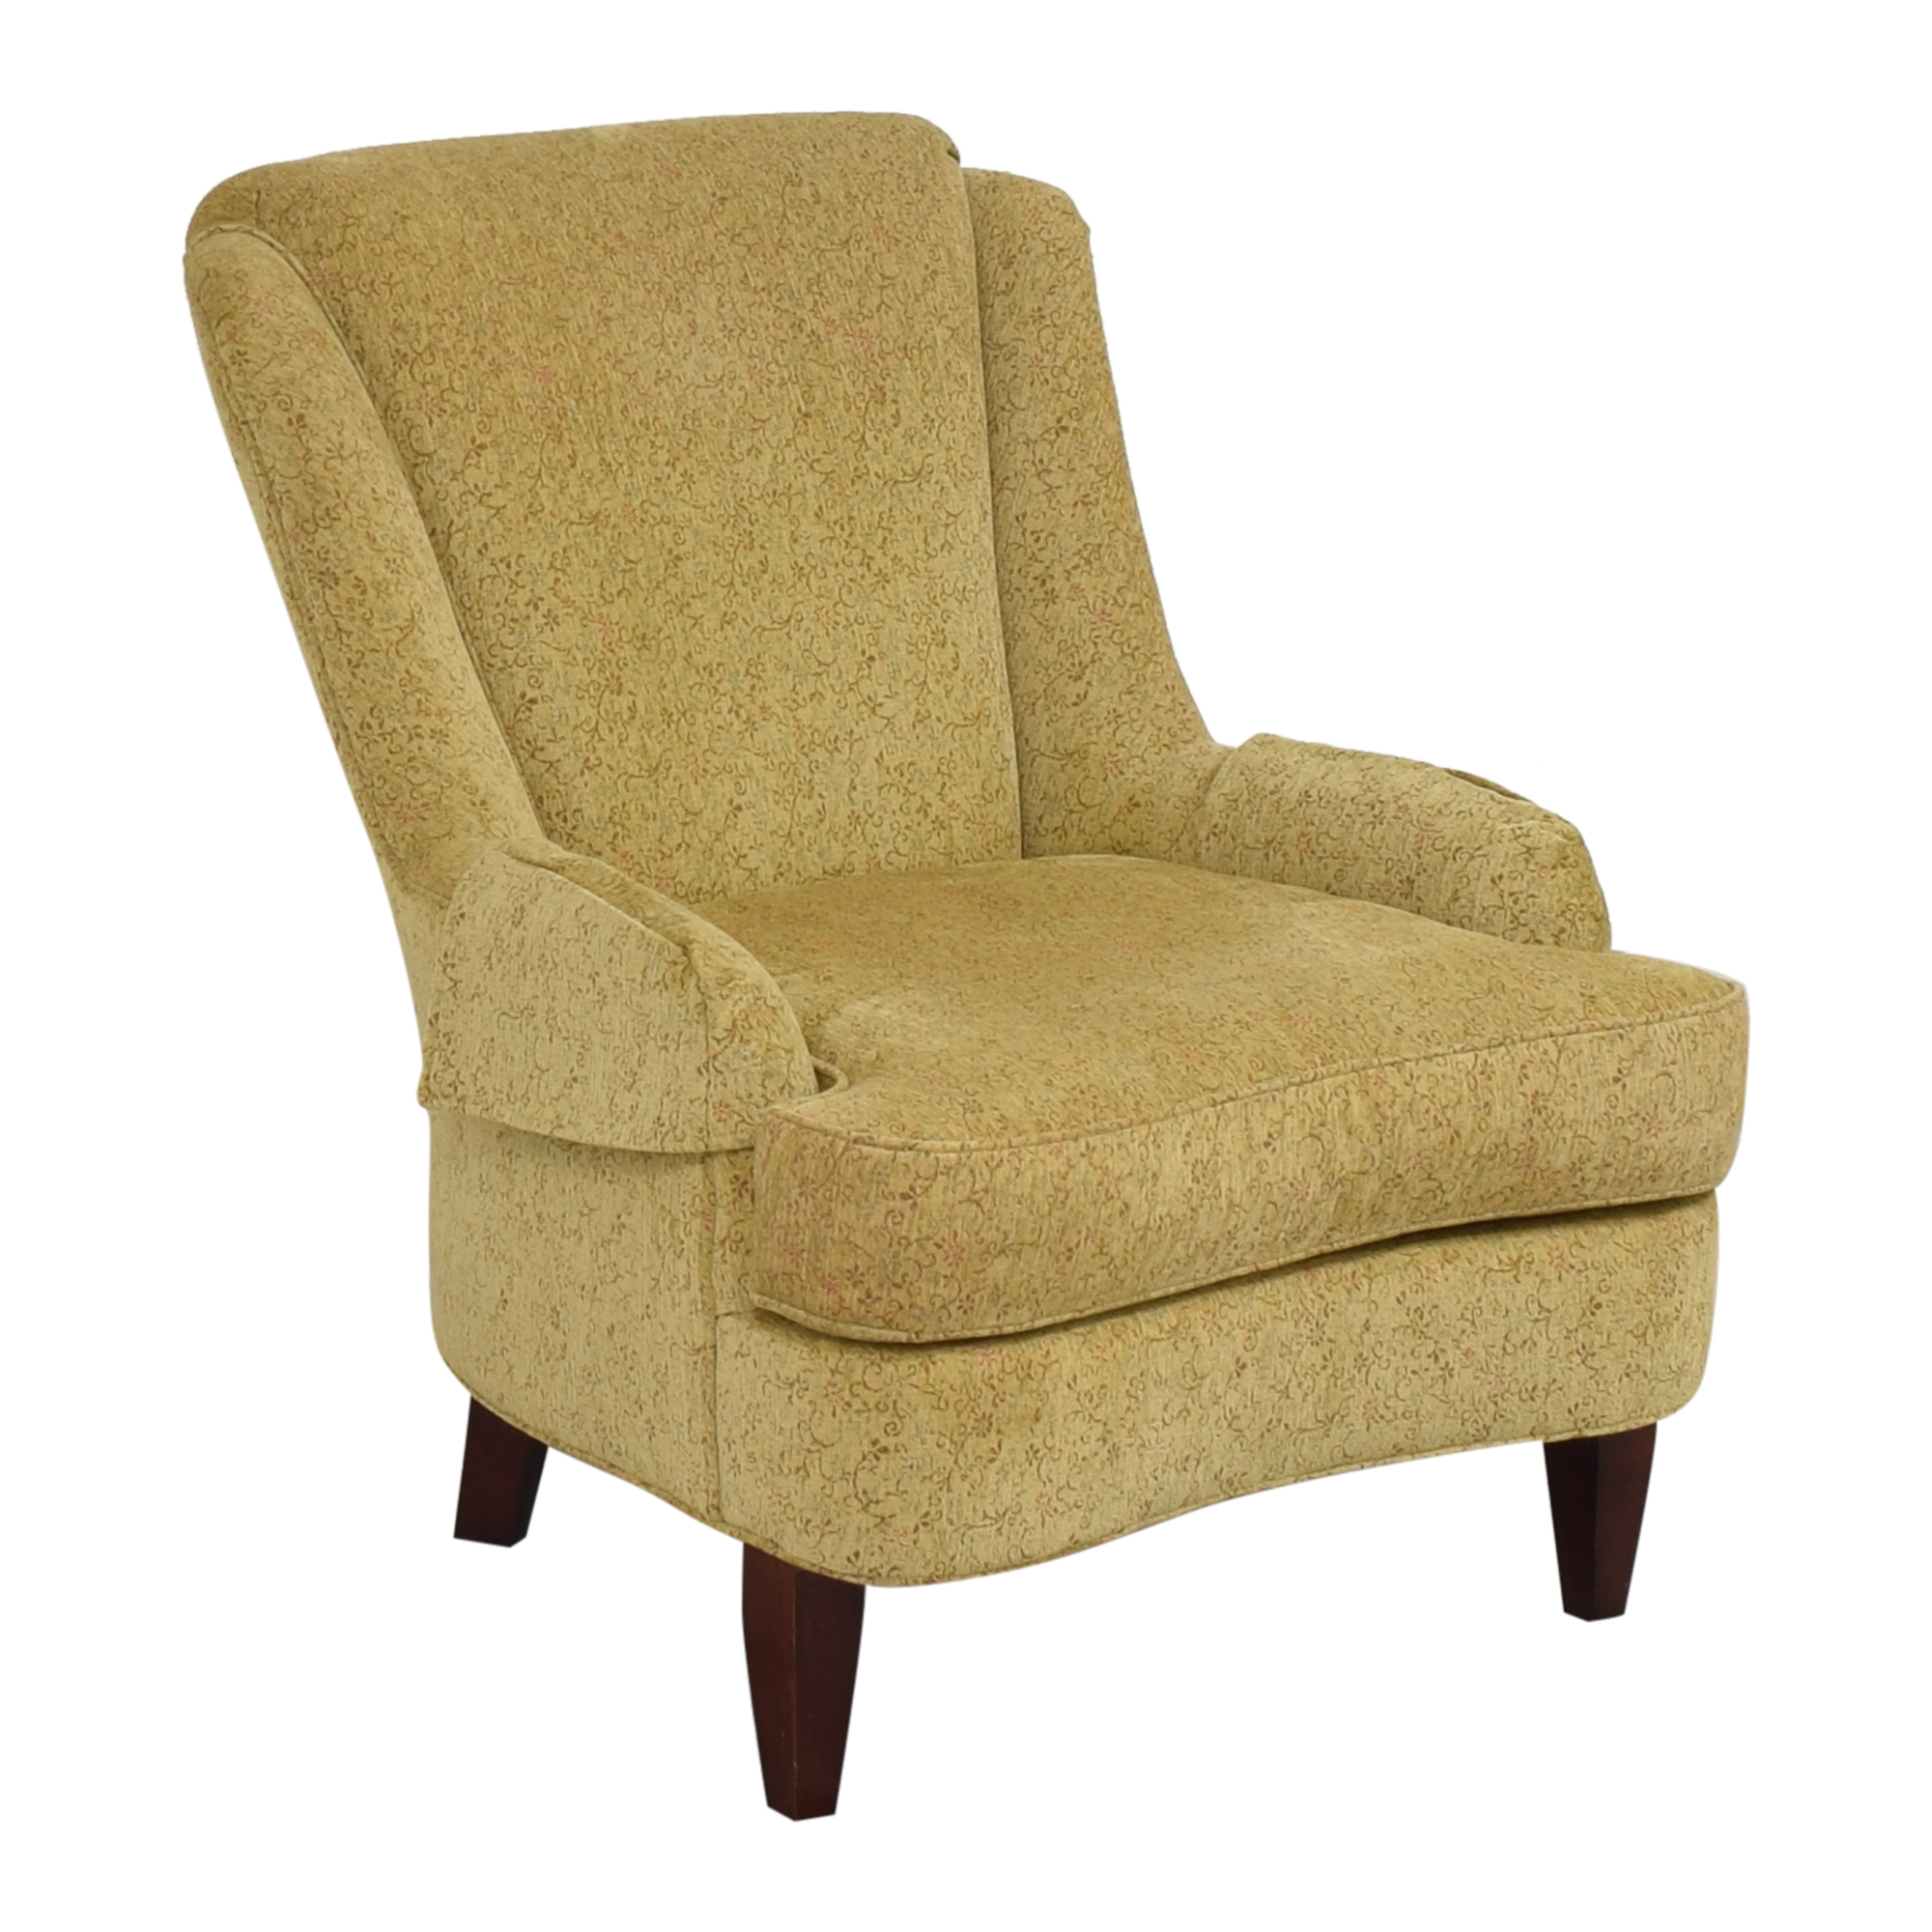 Beacon Hill Collection Beacon Hill Collection Accent Chair used